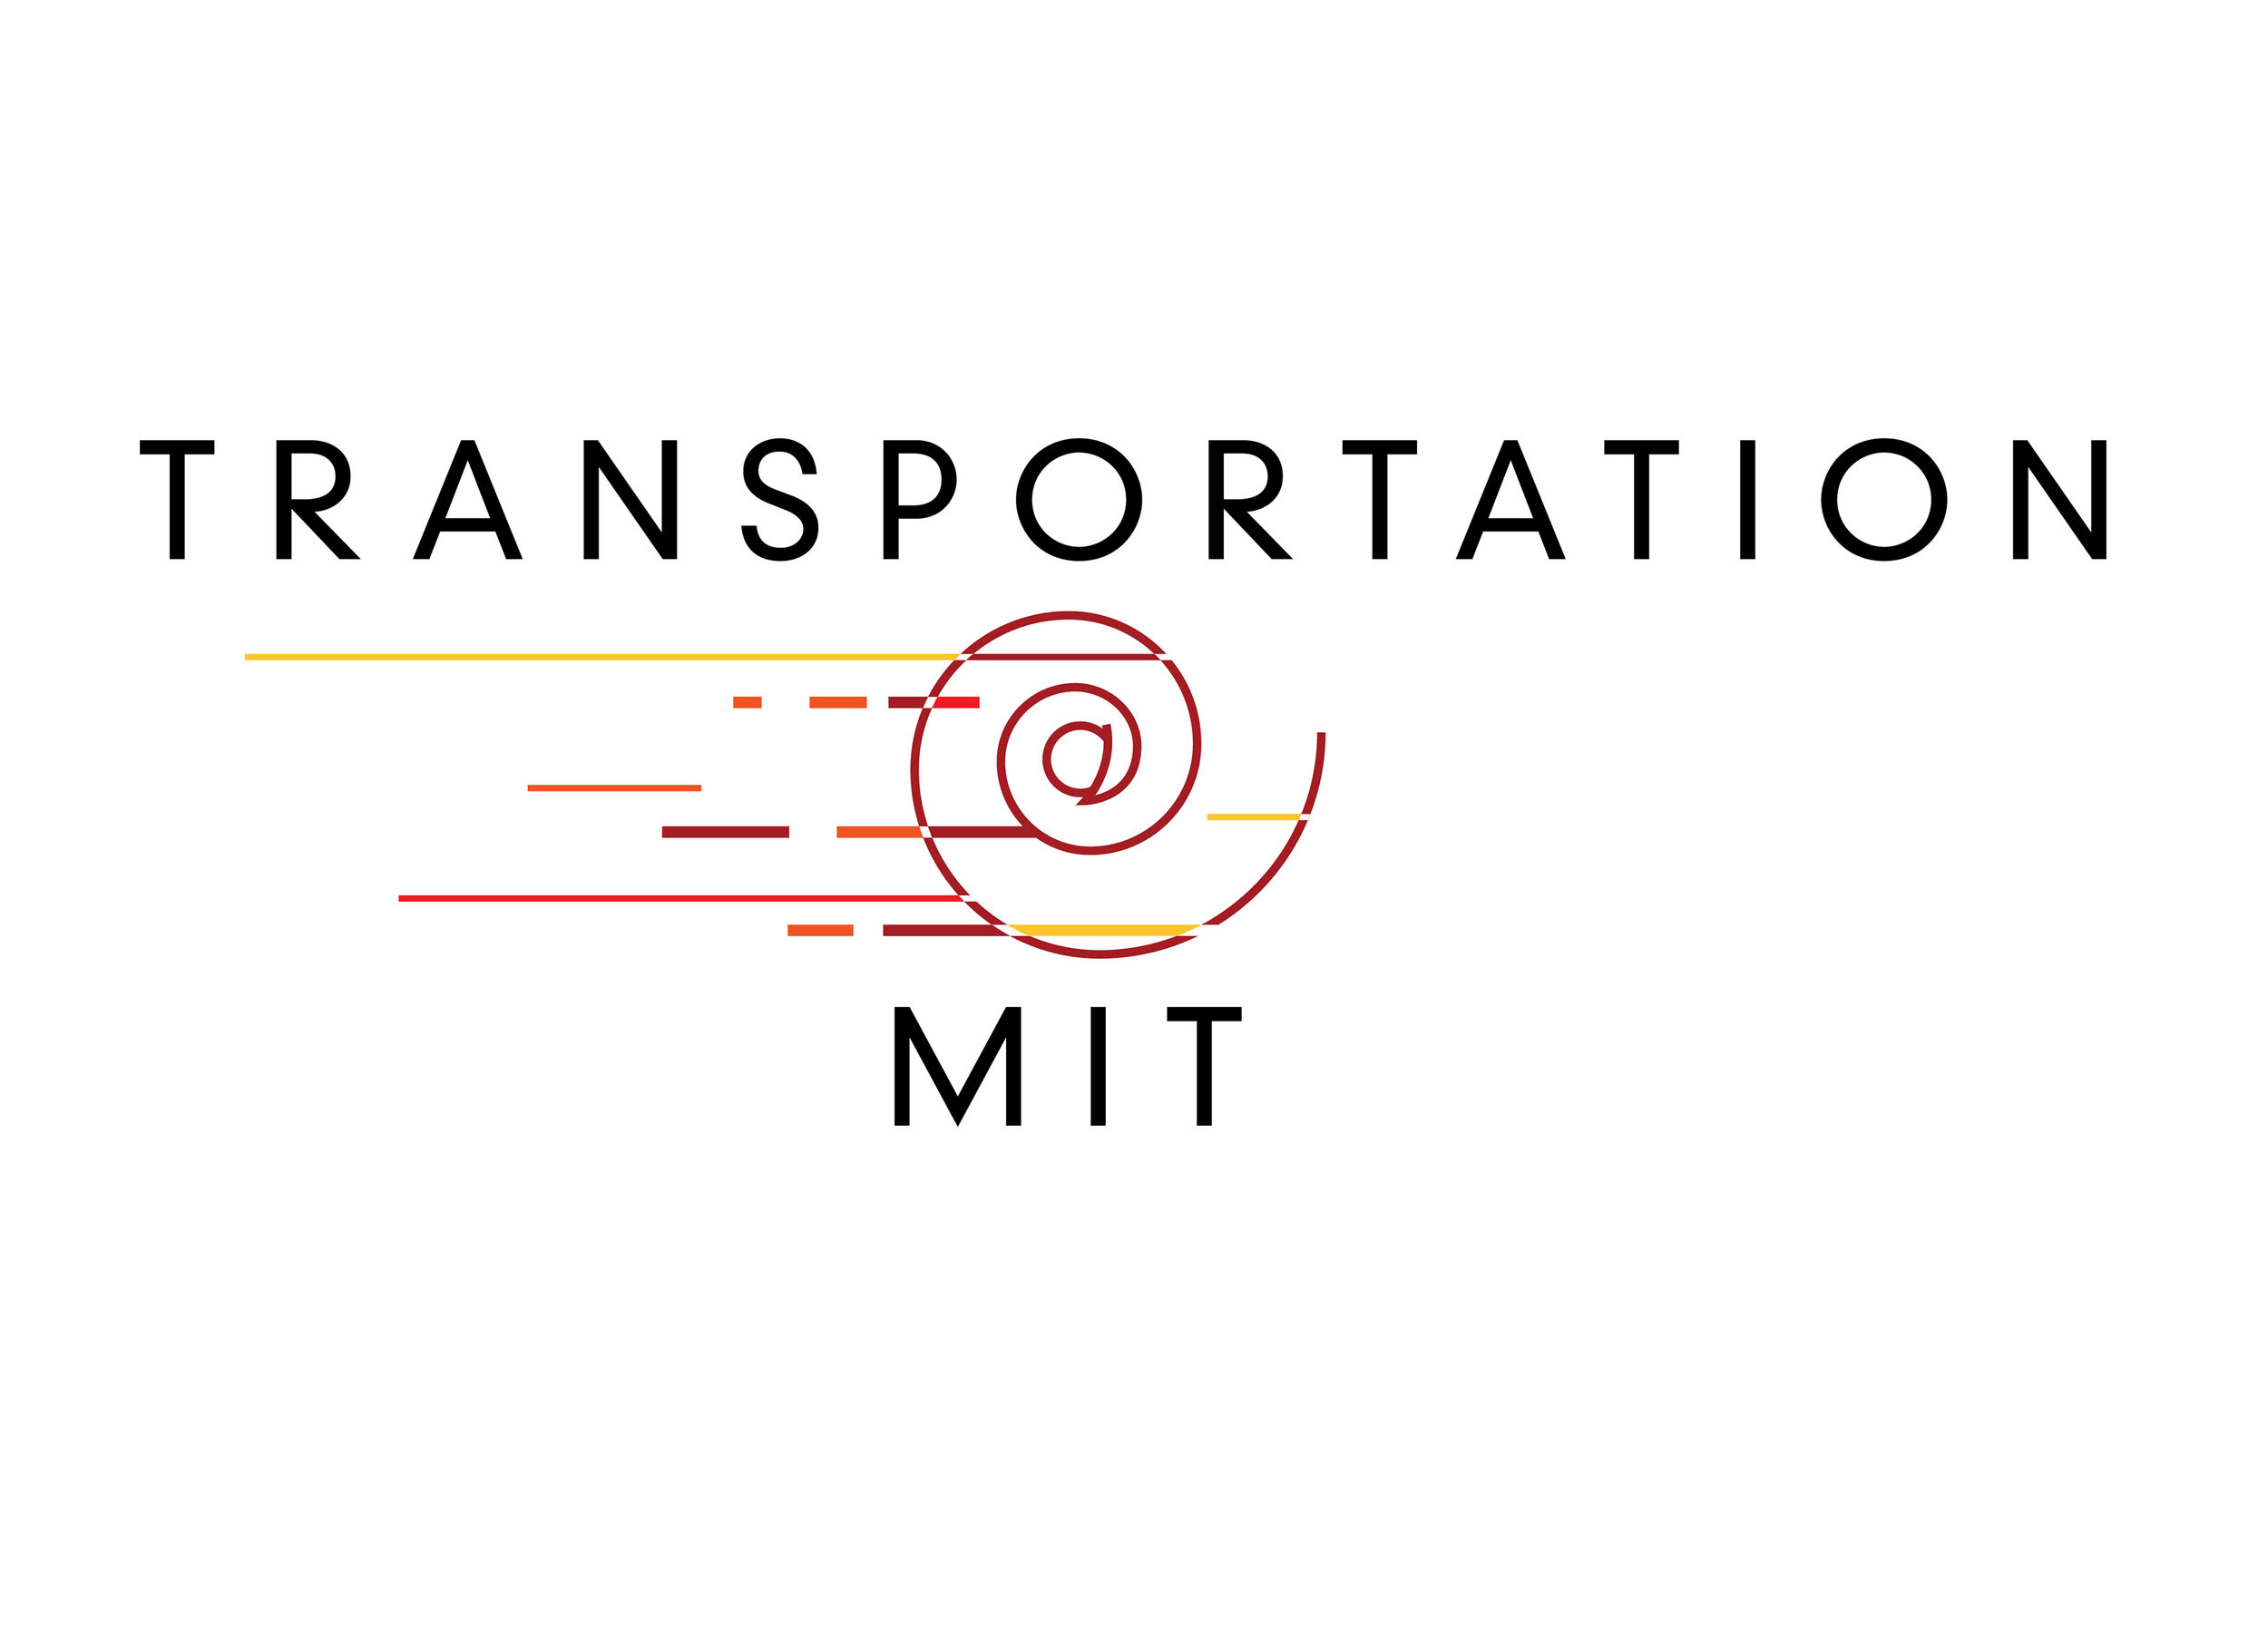 Transportation at MIT